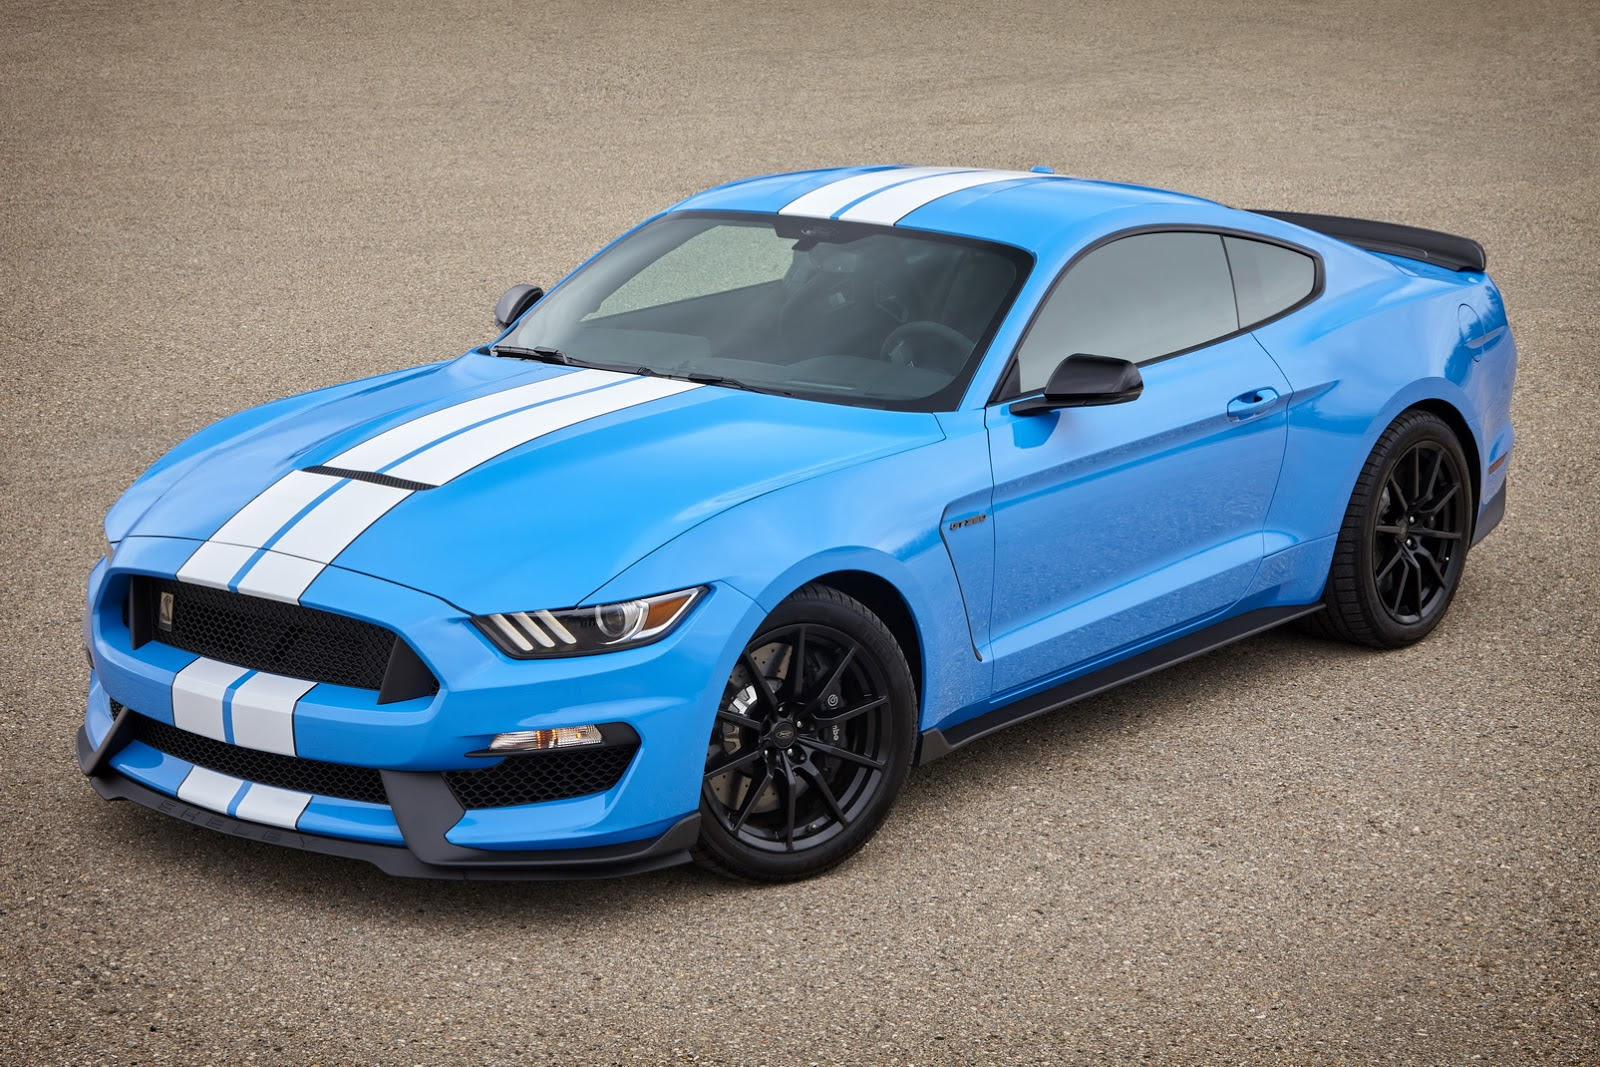 2017 Mustang Shelby GT350: First Pics of New Colors Are MindBlowing